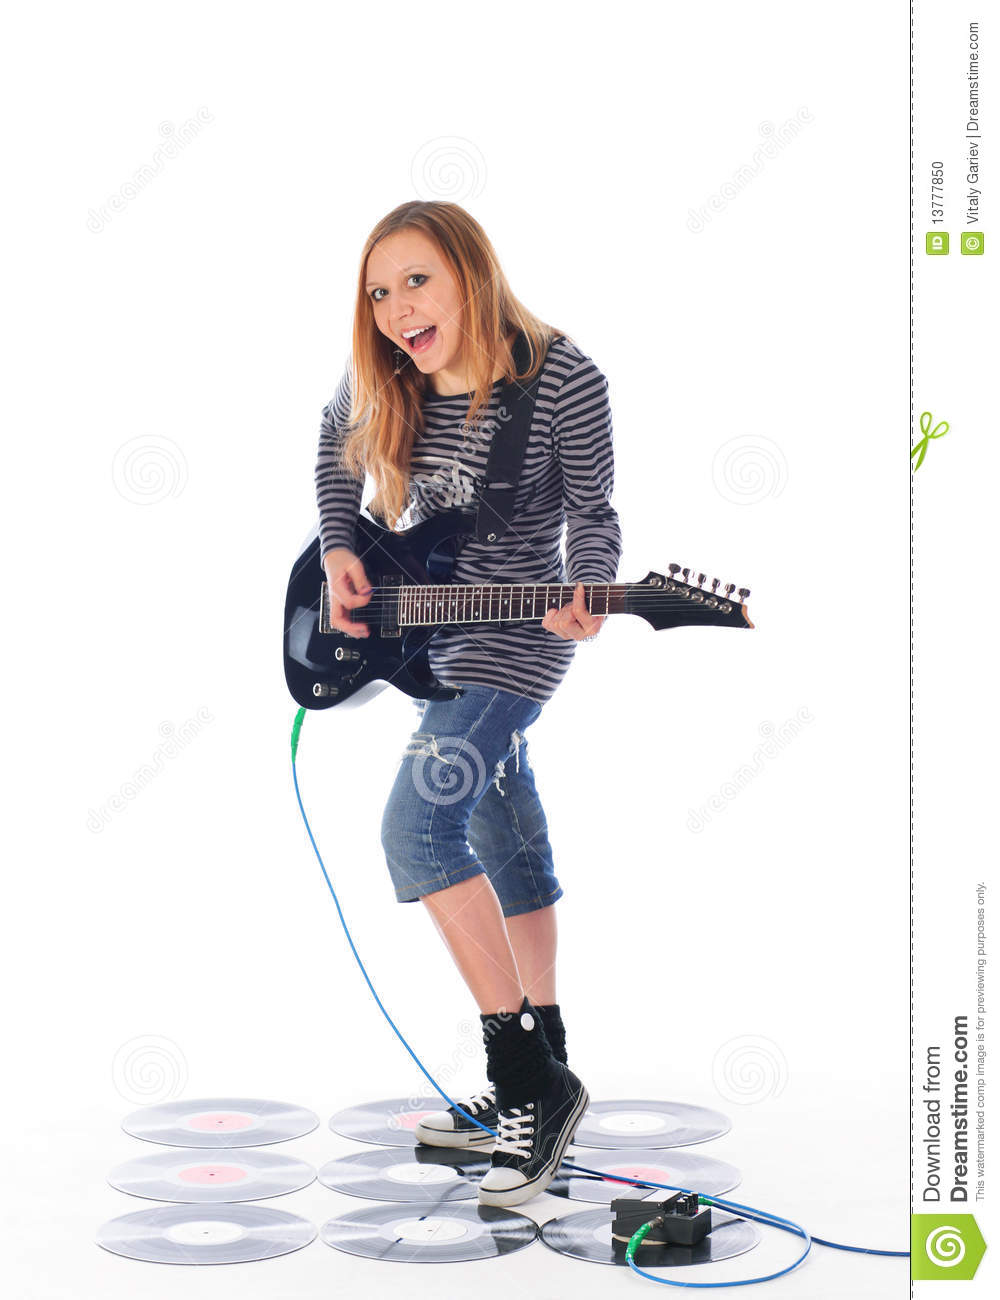 rock 39 n 39 roll girl play guitar stock photo image of perfomance musical 13777850. Black Bedroom Furniture Sets. Home Design Ideas